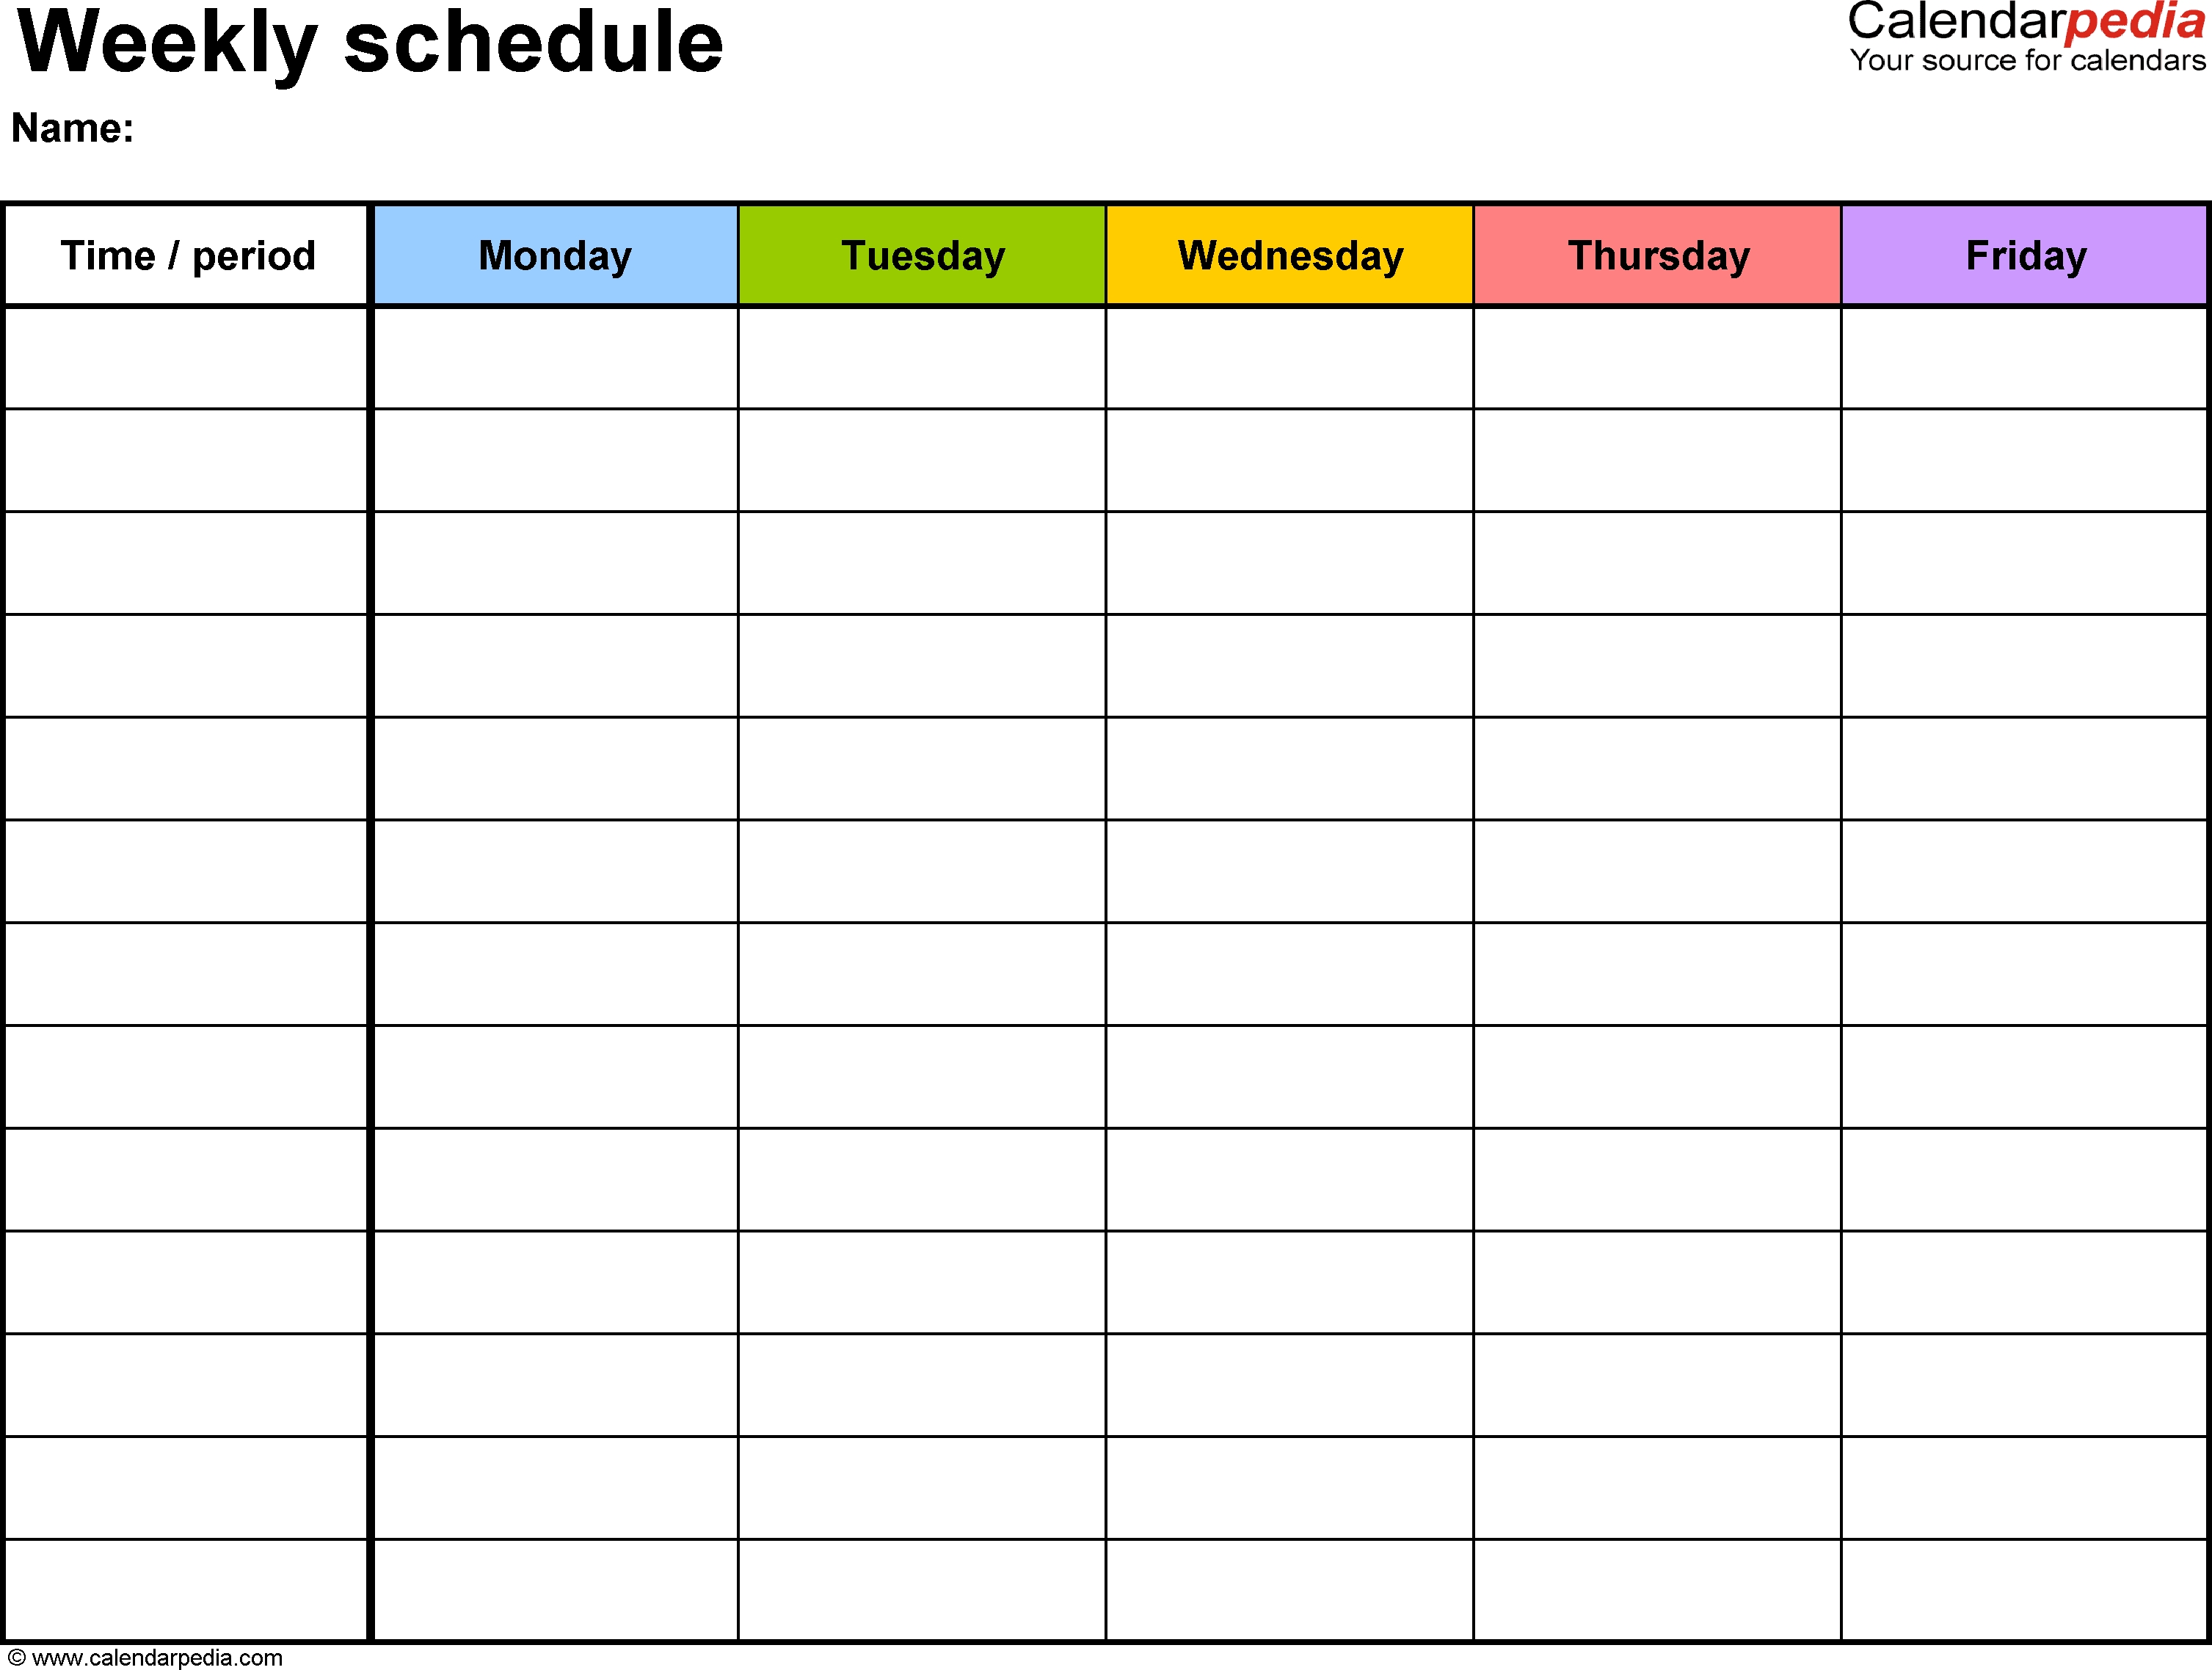 Free Weekly Schedule Templates For Word - 18 Templates  Free Template For Weekly Schedule